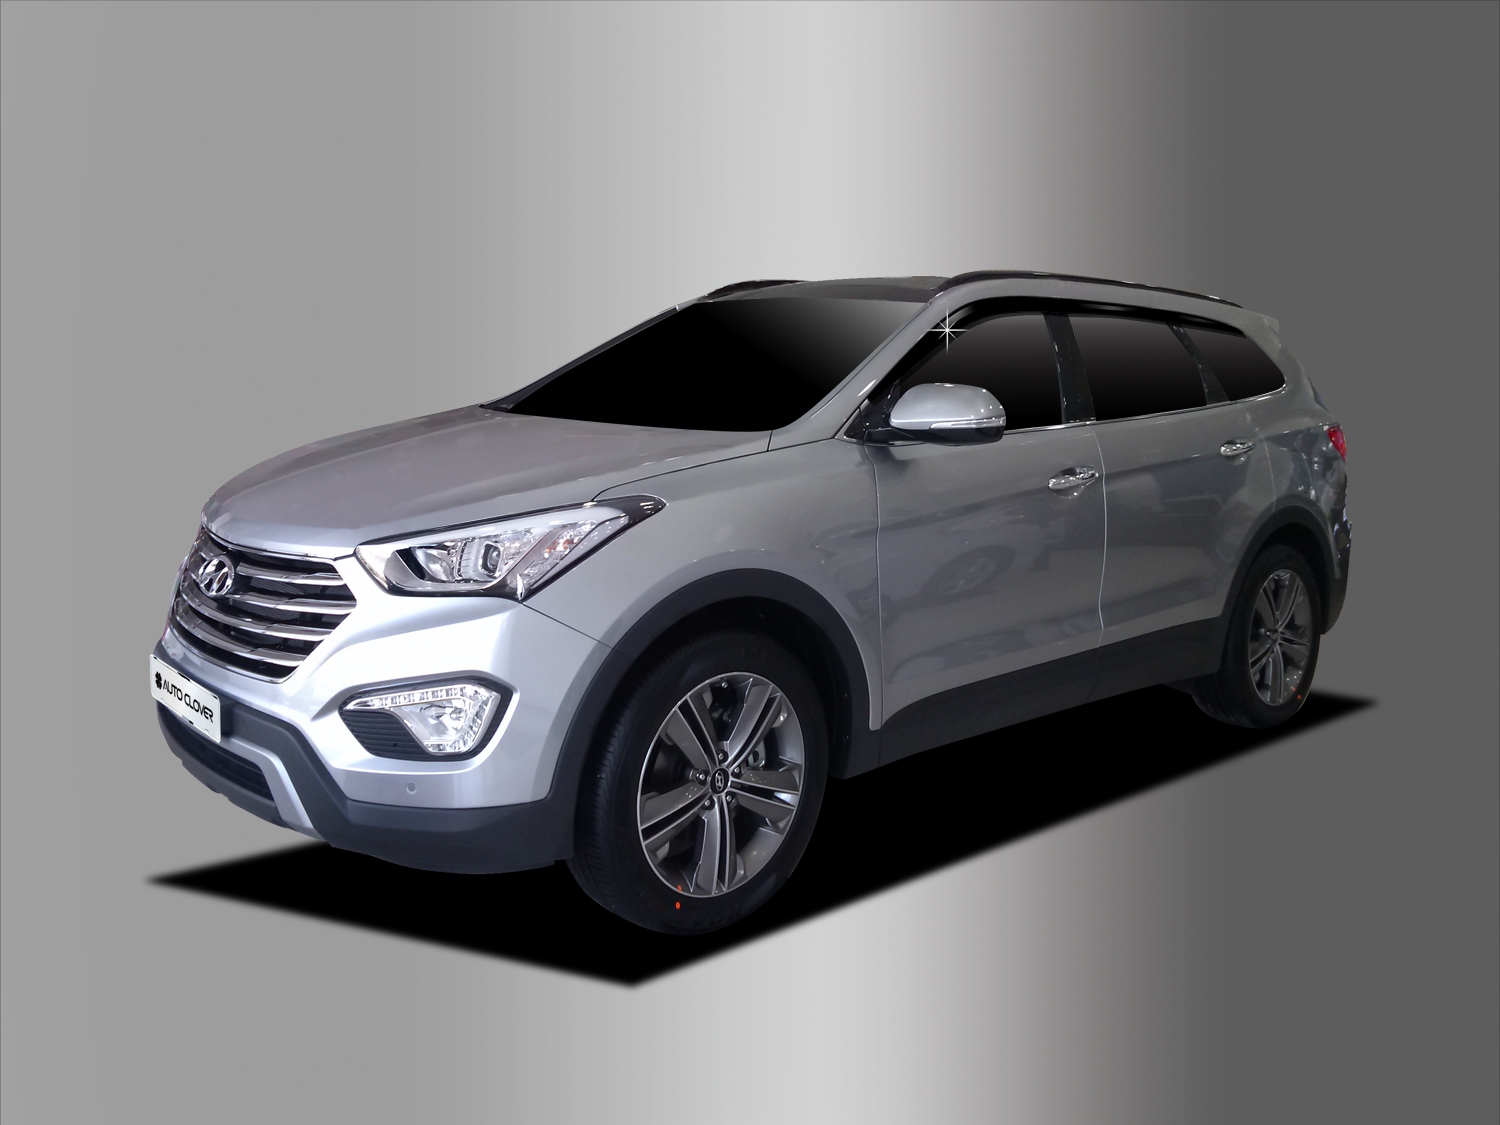 7-Passenger Seat Model AUTOCLOVER Smoked Black Side Window Wind Deflectors Visor 6p for 2019 Hyundai Santa Fe XL